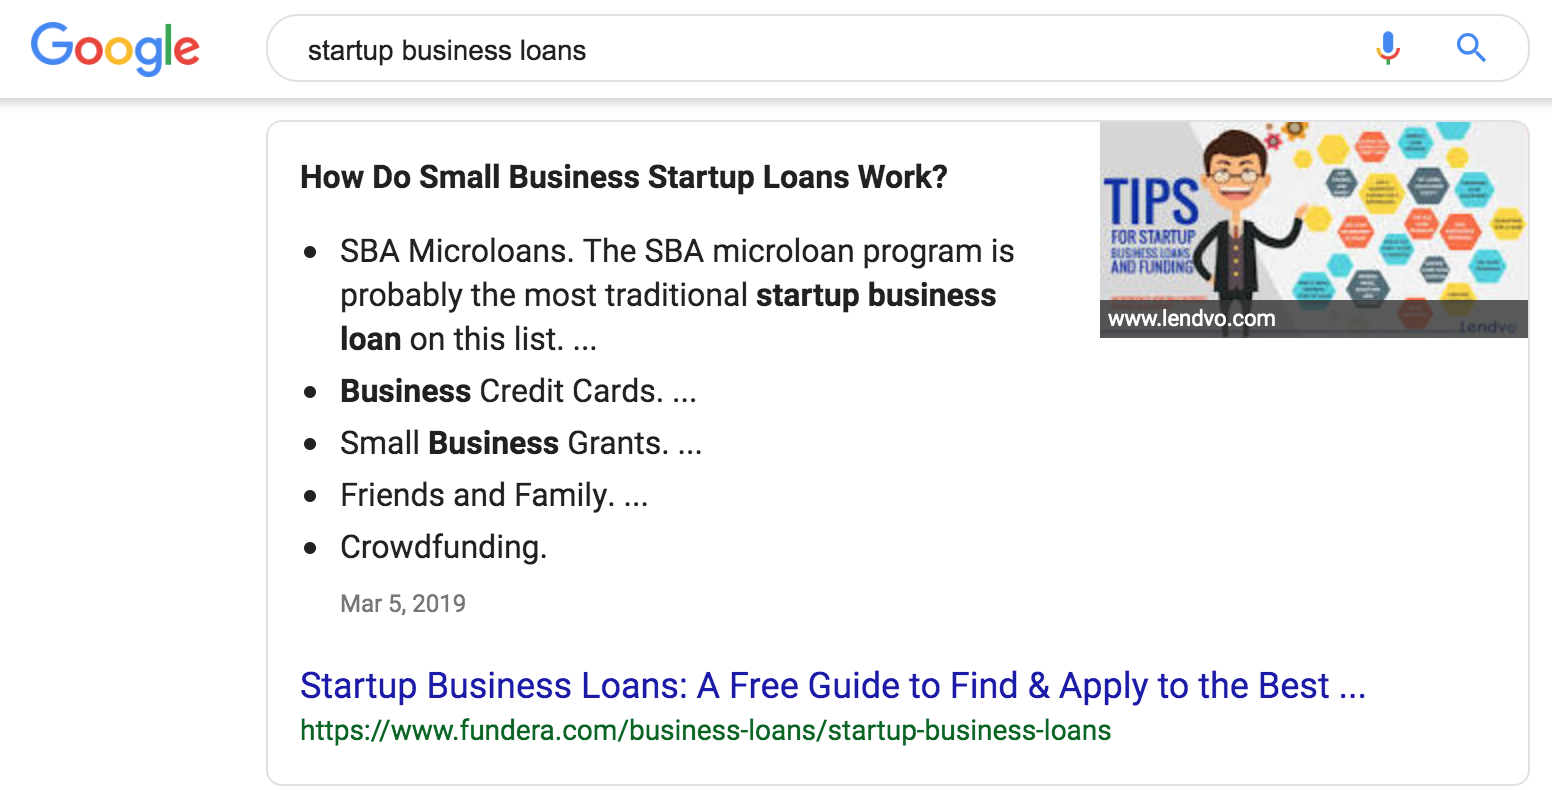 startup-business-loans